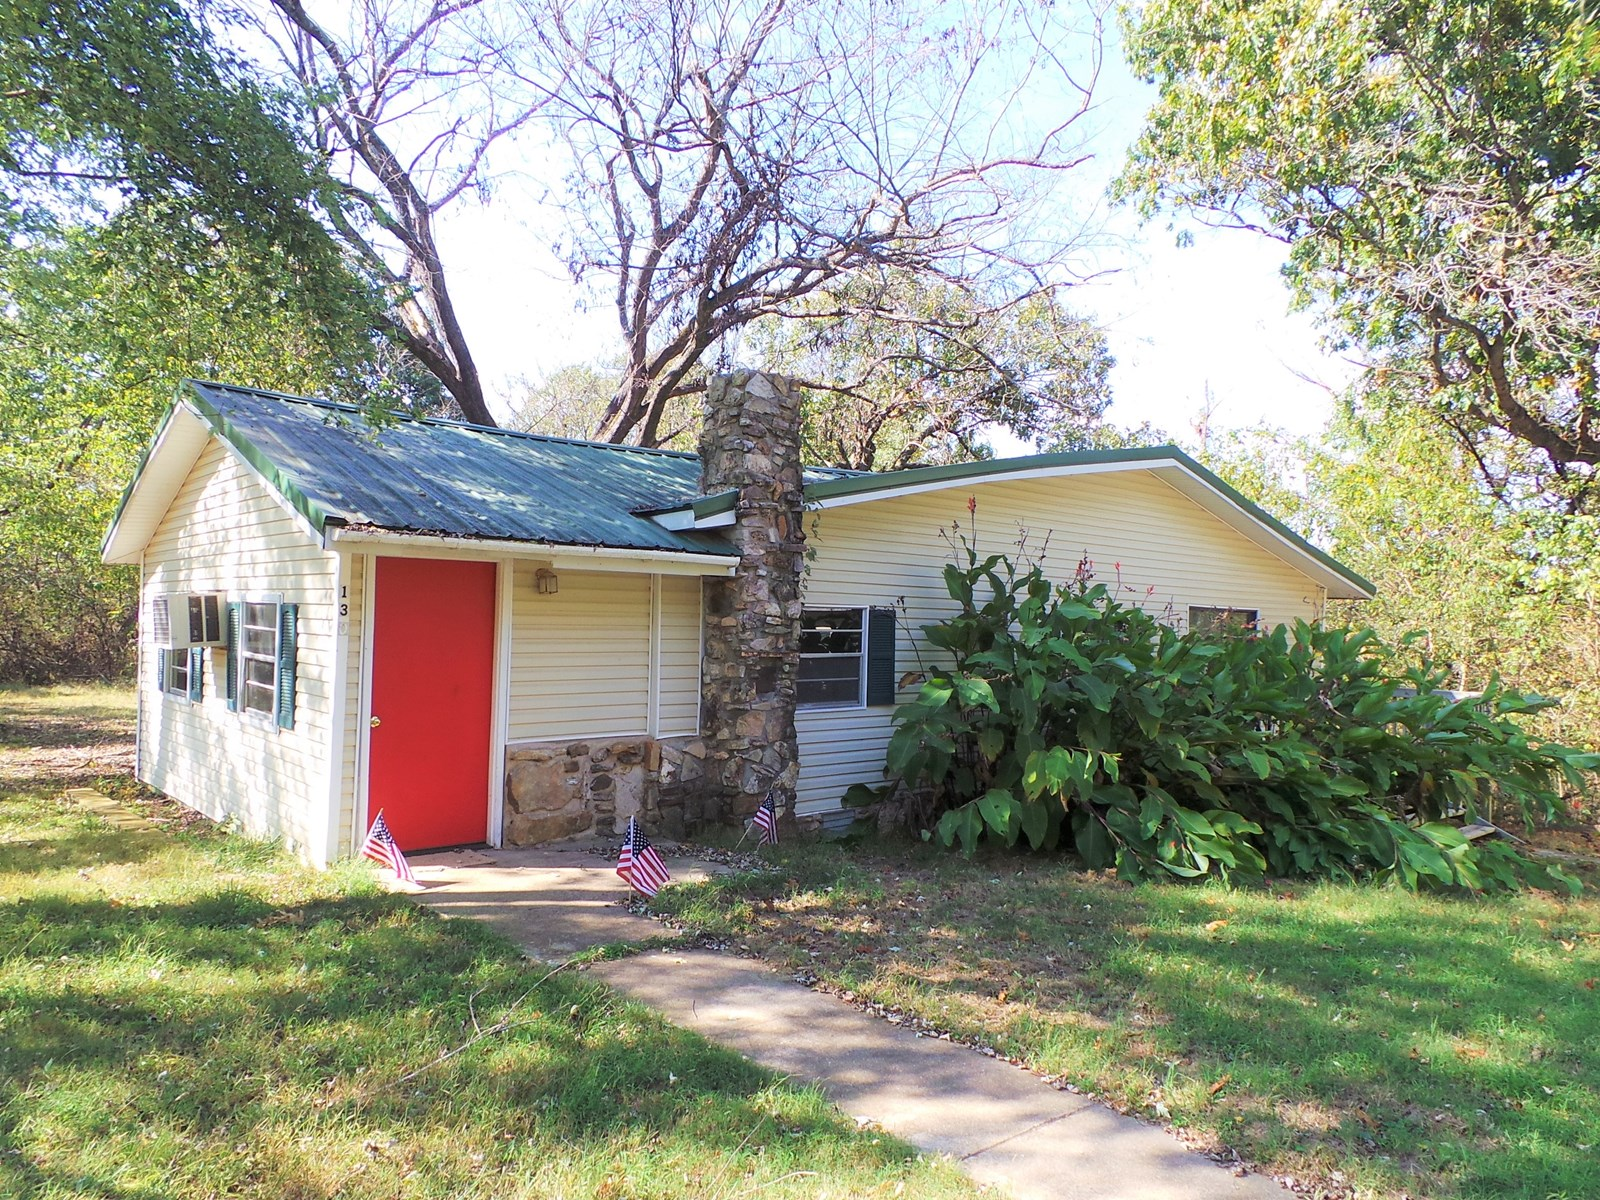 2 HOMES FOR SALE IN YELLVILLE, ARKANSAS